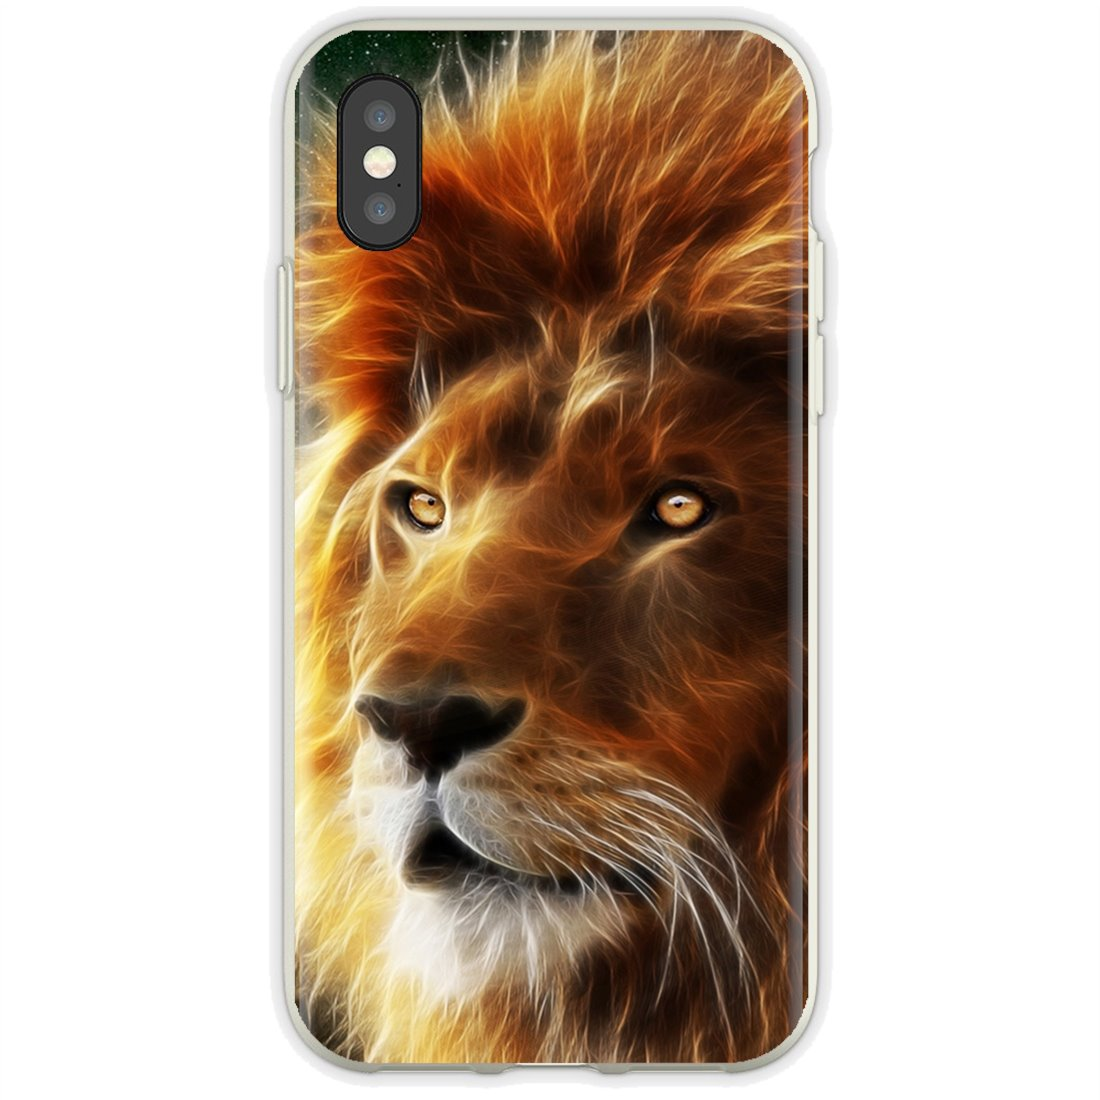 Tiger and lion head Buy Silicone Phone Case For Huawei Honor Y5 2018 2019 8S 9X Pro 20 10 10i Lite(China)